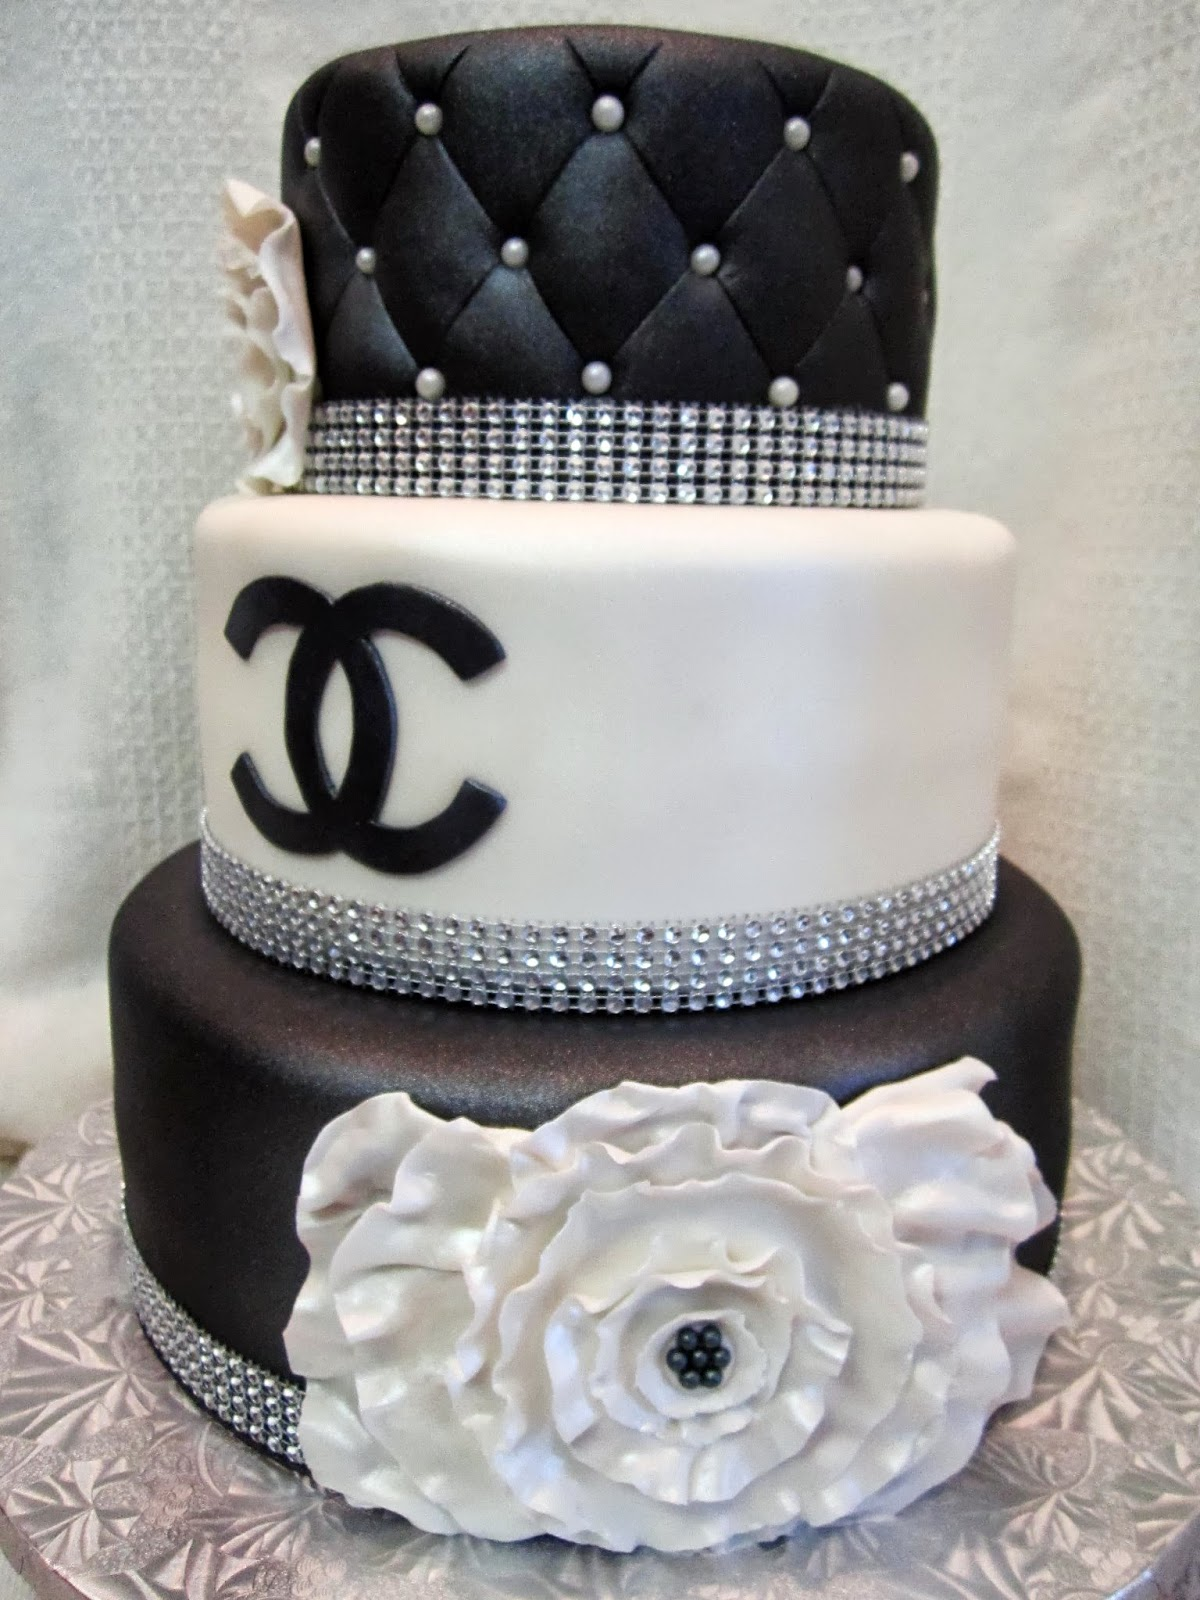 Mymonicakes Chanel Inspired Cake With Quilted And Ruffle